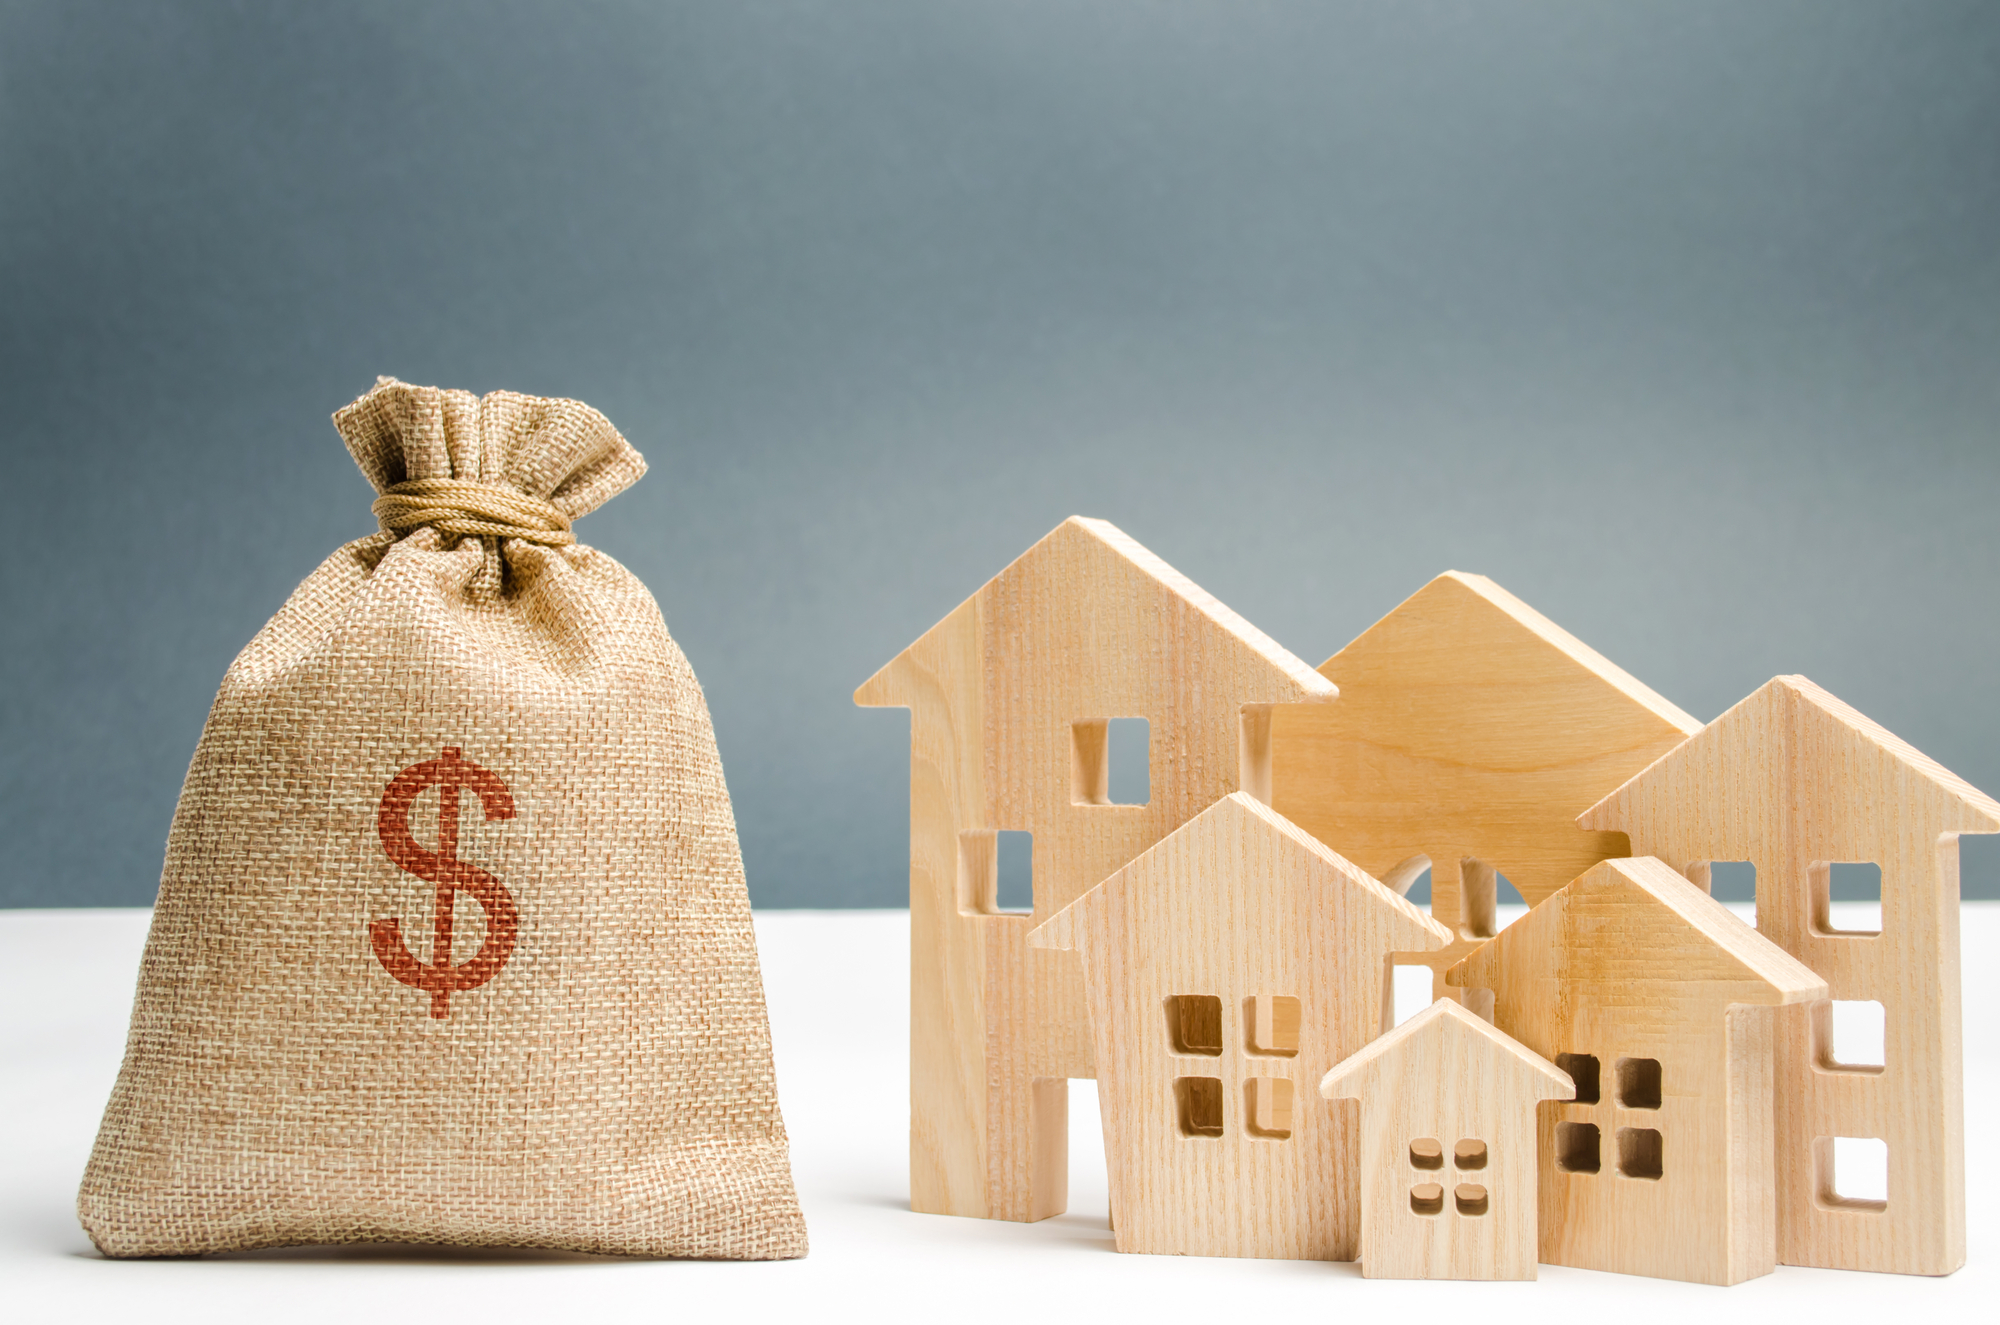 Bag with money and dollar sign and wooden houses, Investing money in real estate. Saving and accumulation of money. Mortgage. Buying a home. Property sale. City budget